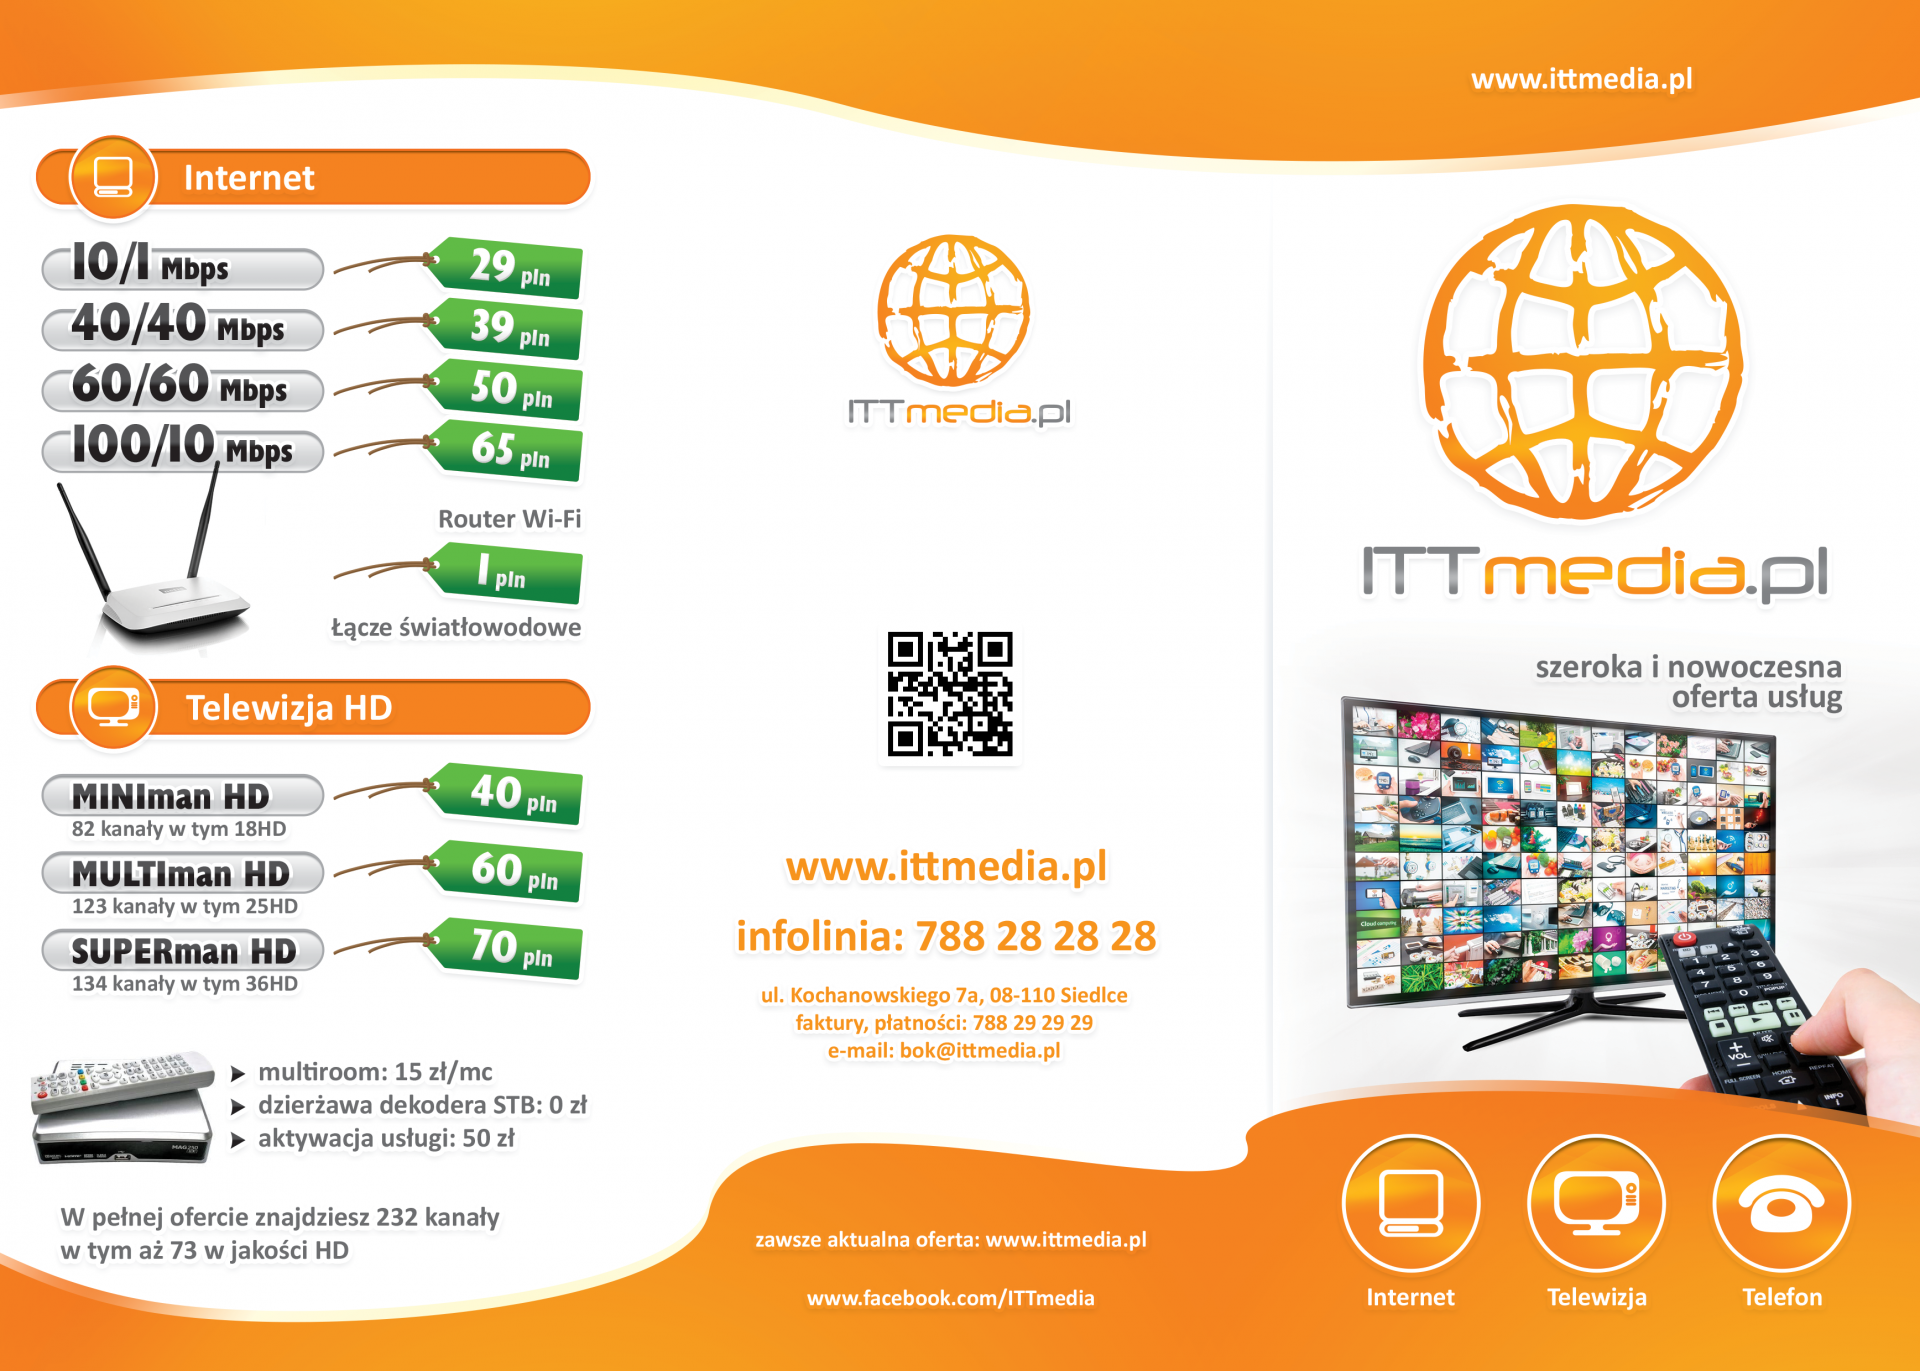 ITTmedia - 3xDL Flyer 2. Outer sites